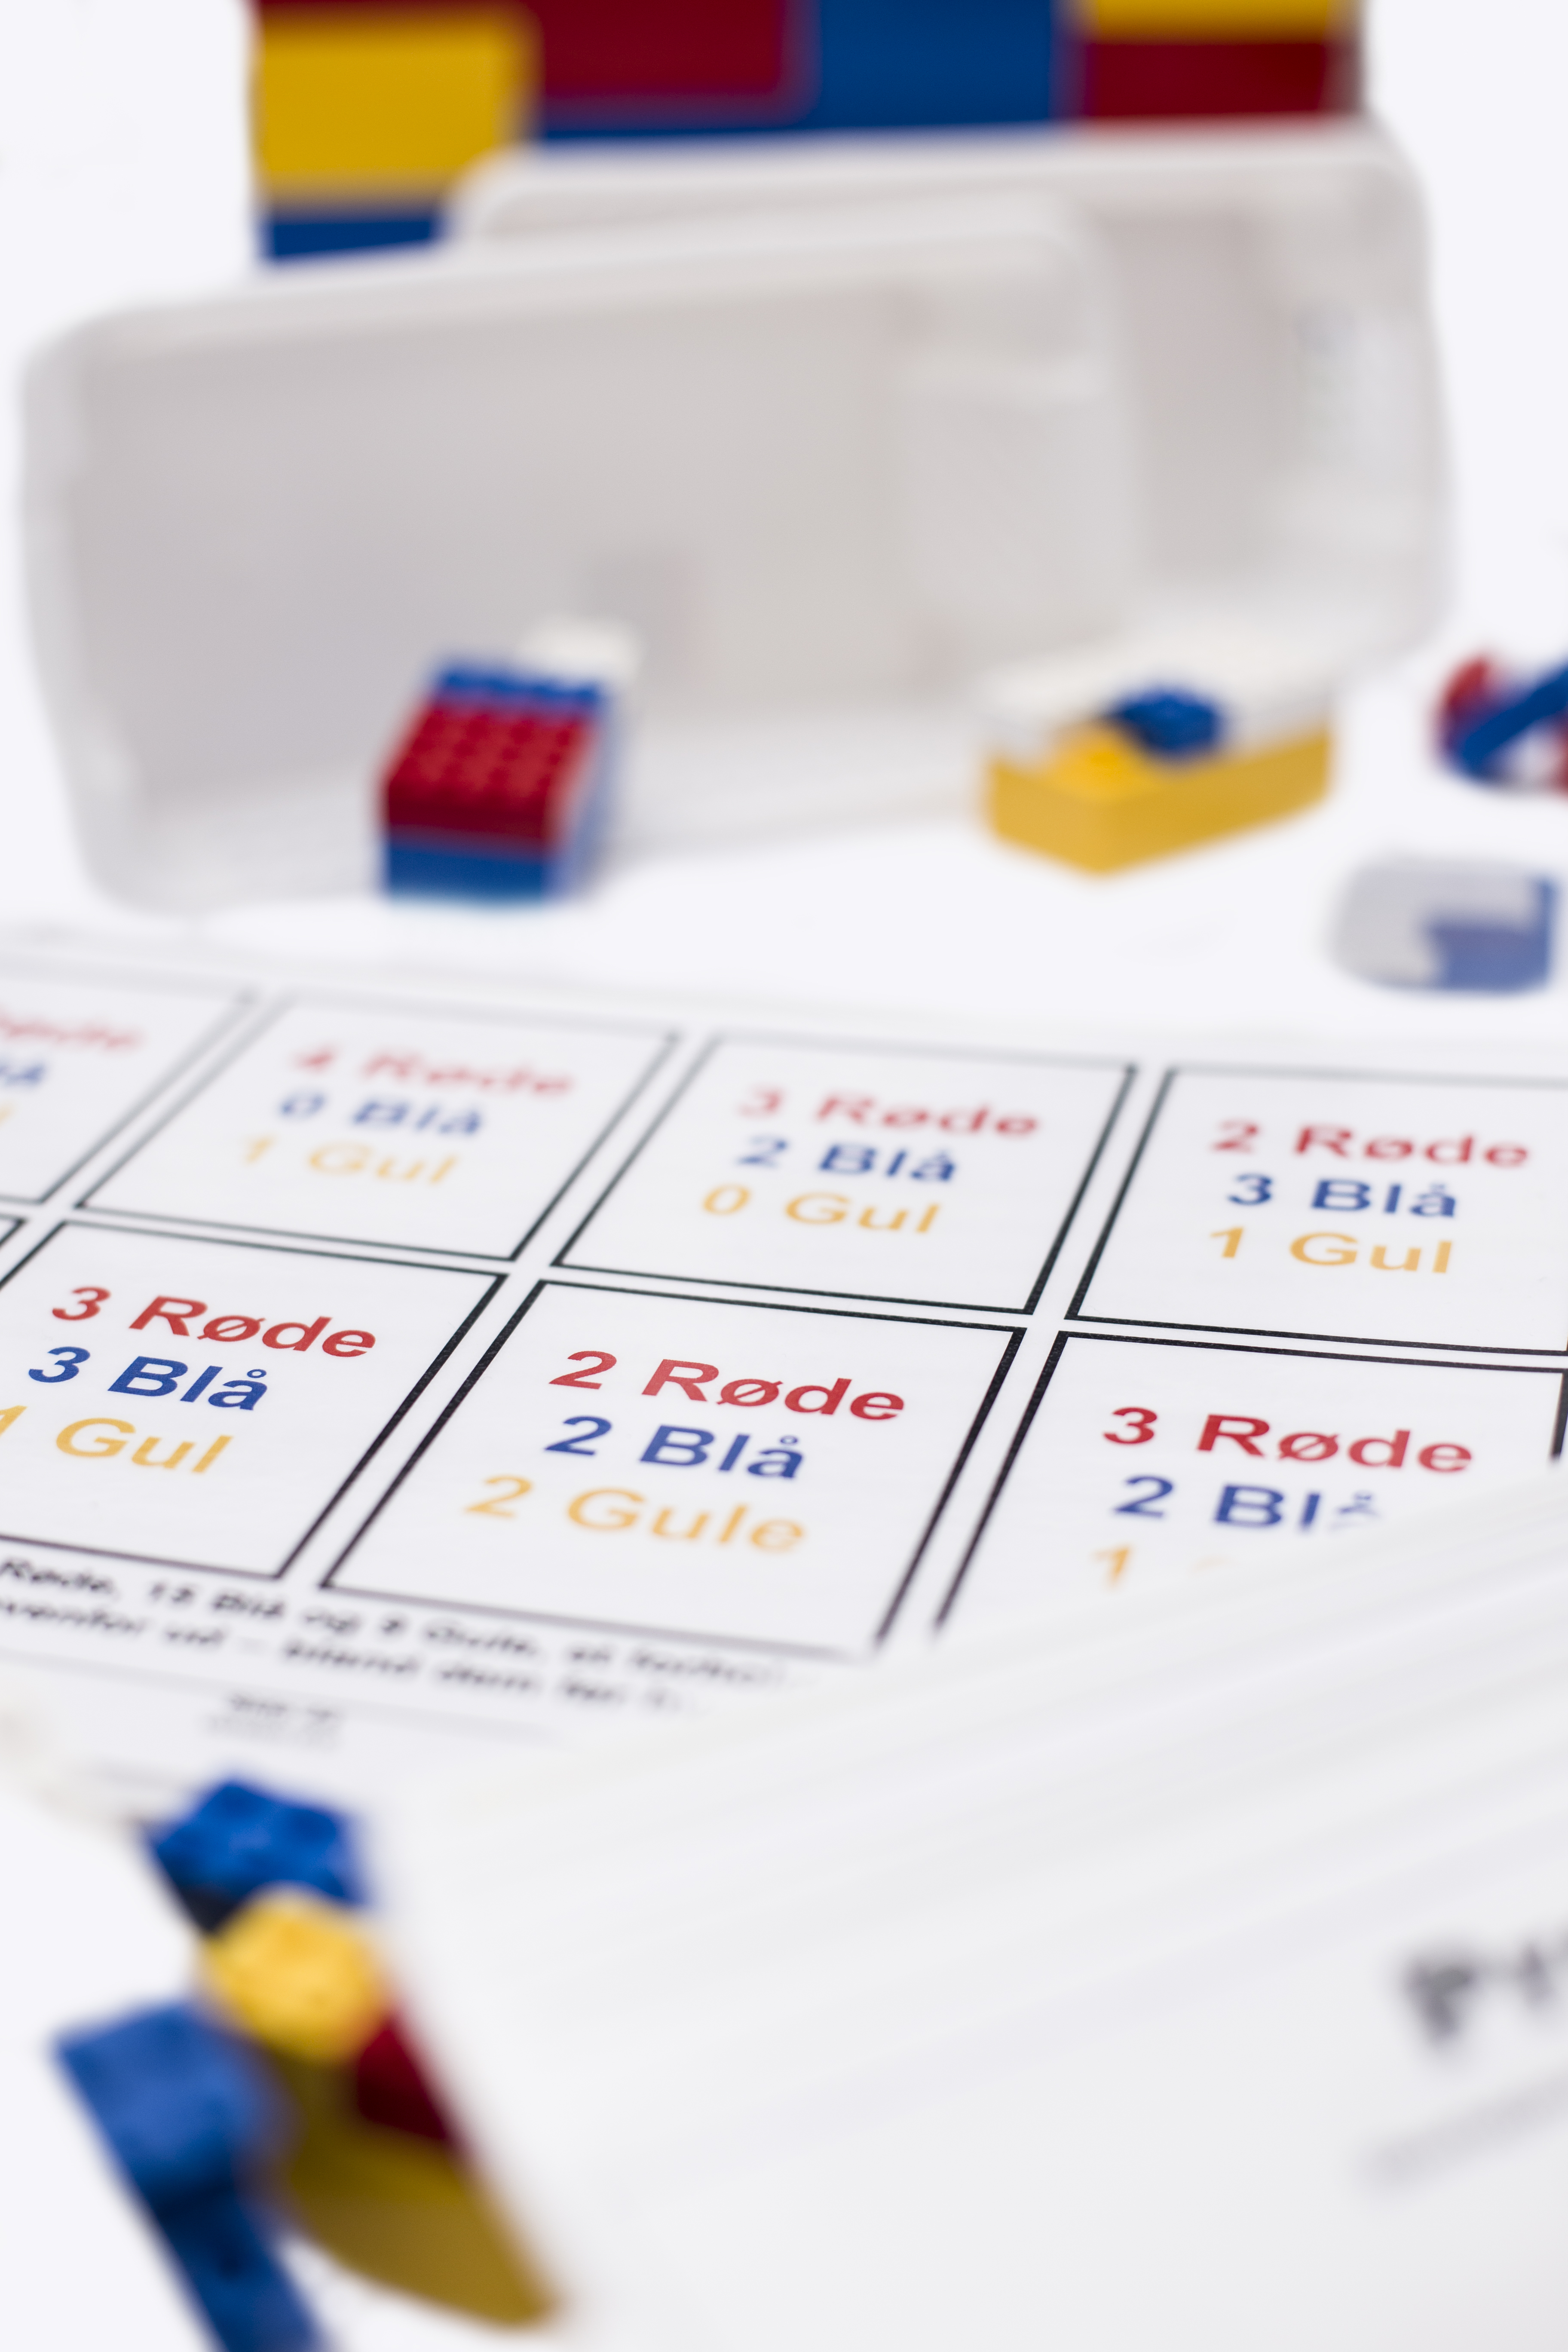 buckingham lean game Does anyone have that could send me any of these card drop game, lean dice game, buckingham lean game or other simple simulations of concepts and techniques.